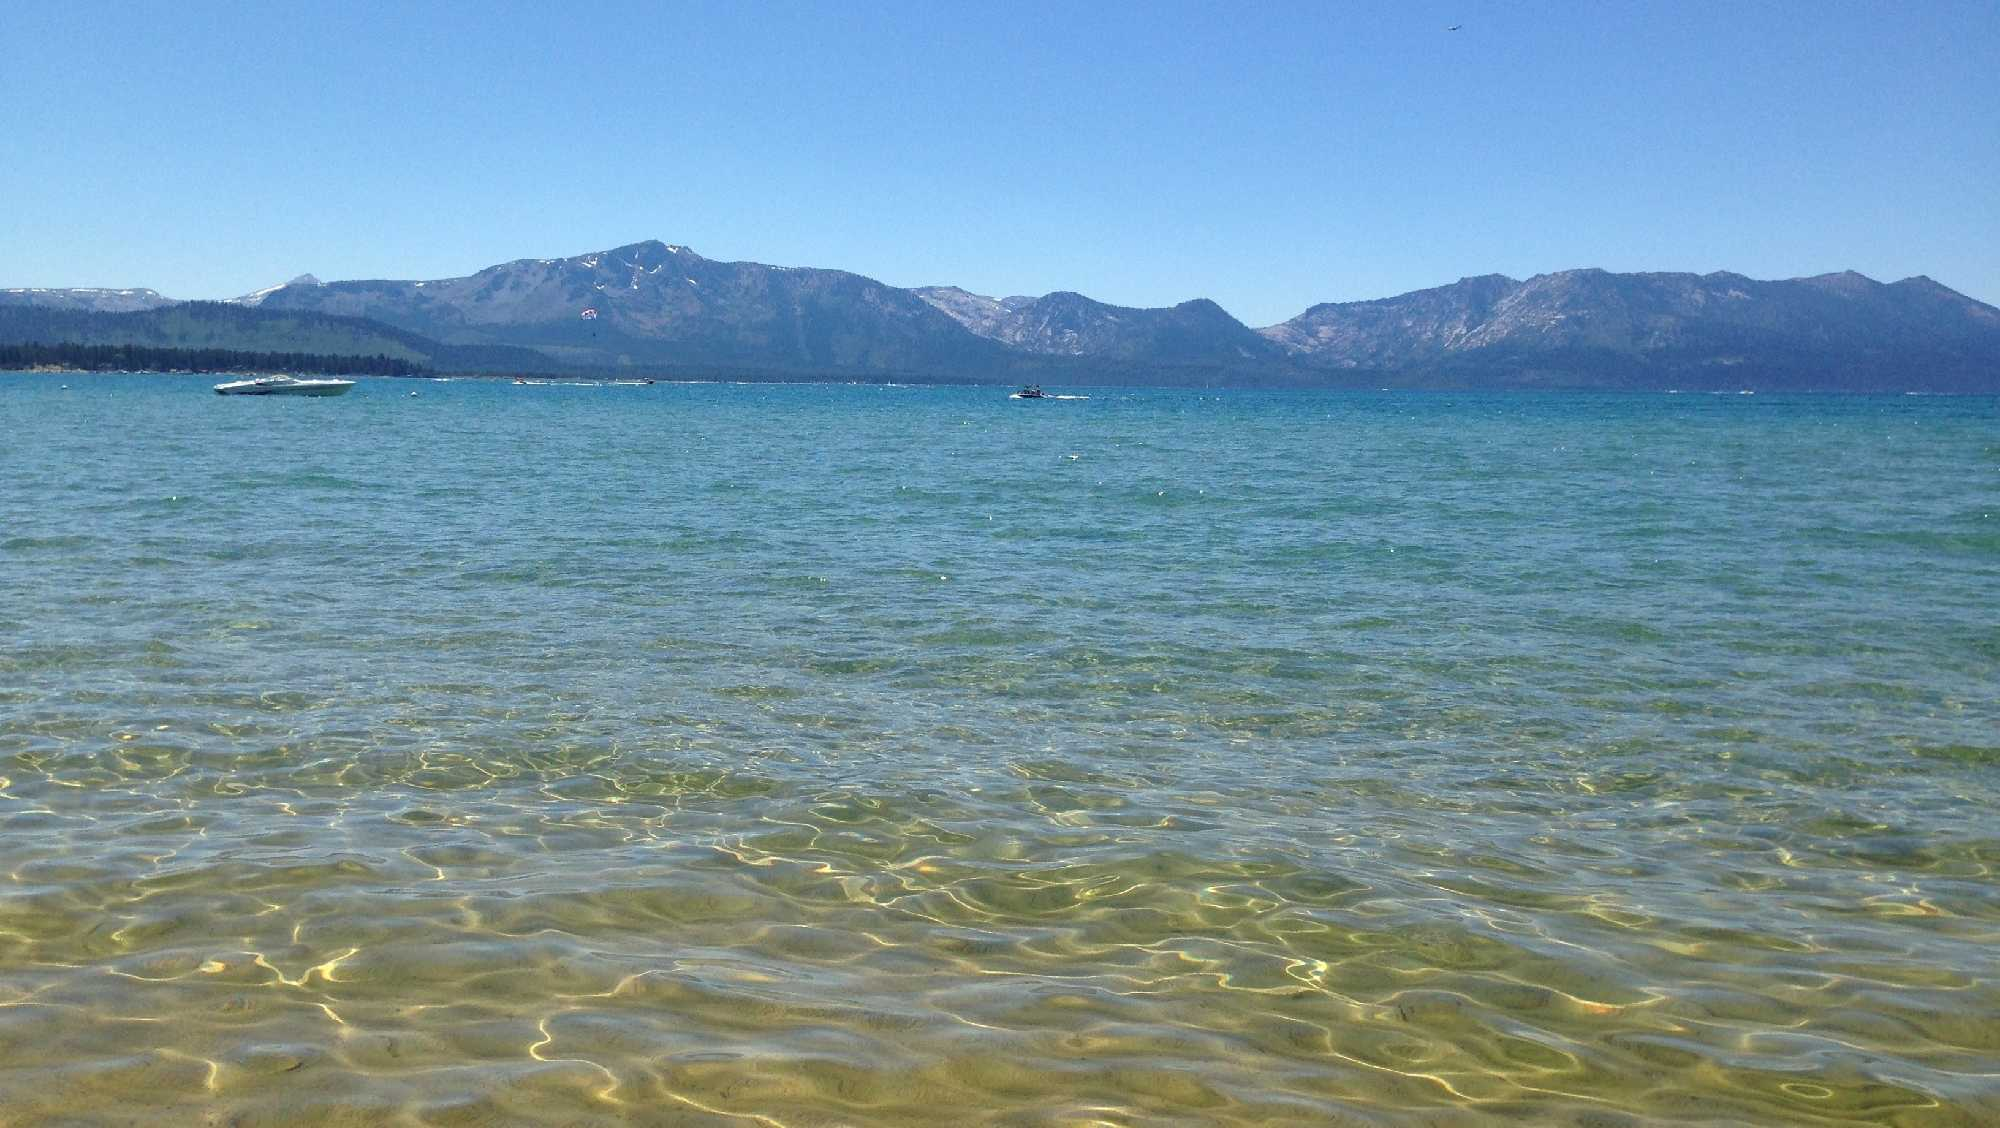 Lake Tahoe development plan upheld in appeals court